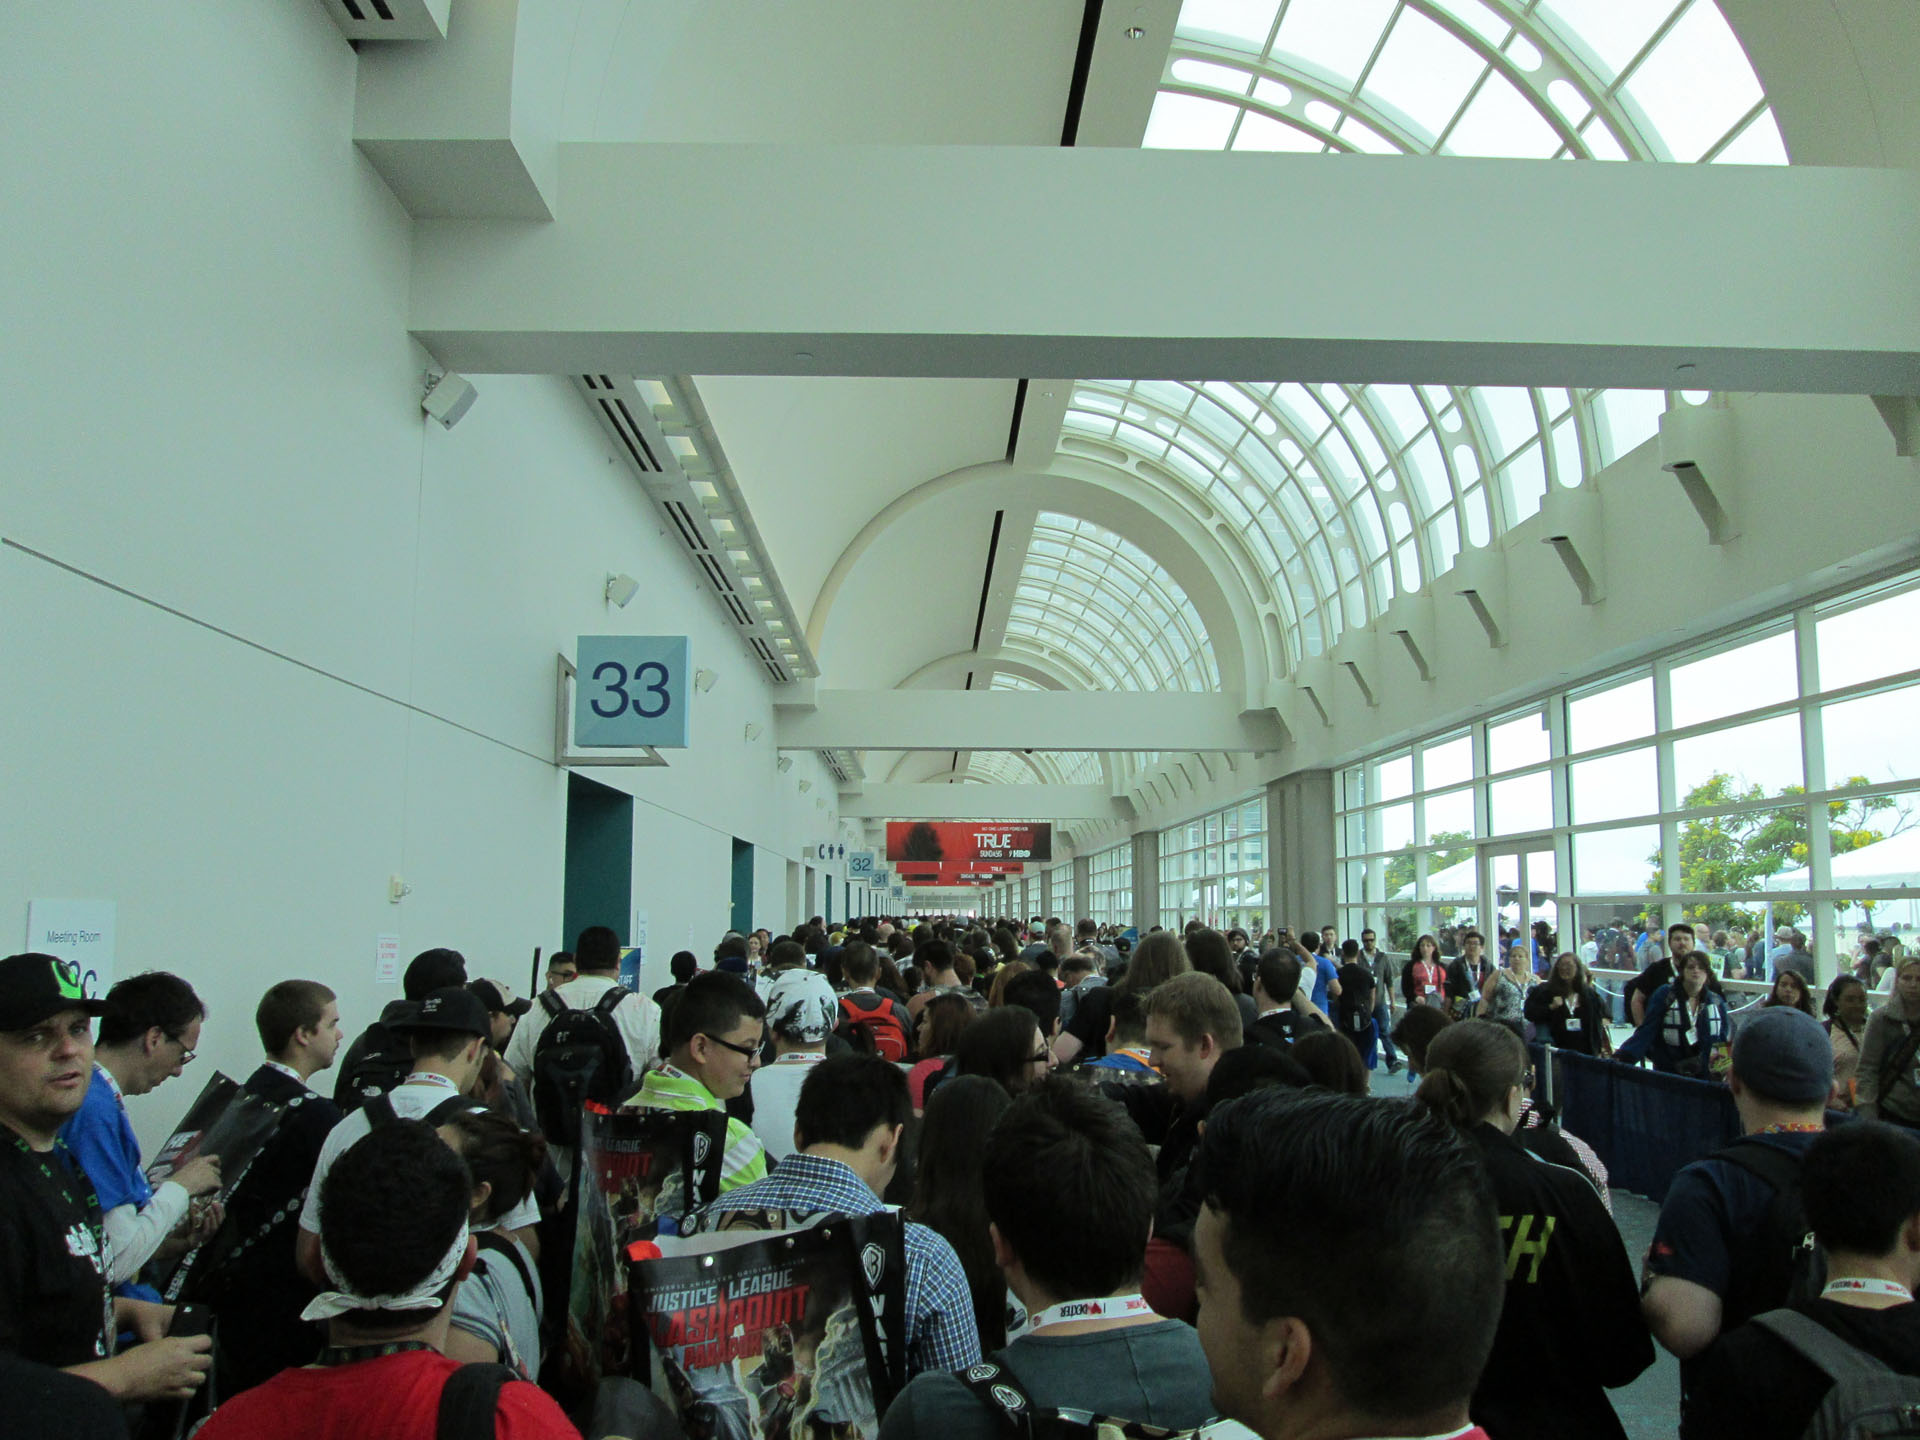 The lineup of people waiting to enter the Exhibit Hall on Thursday.